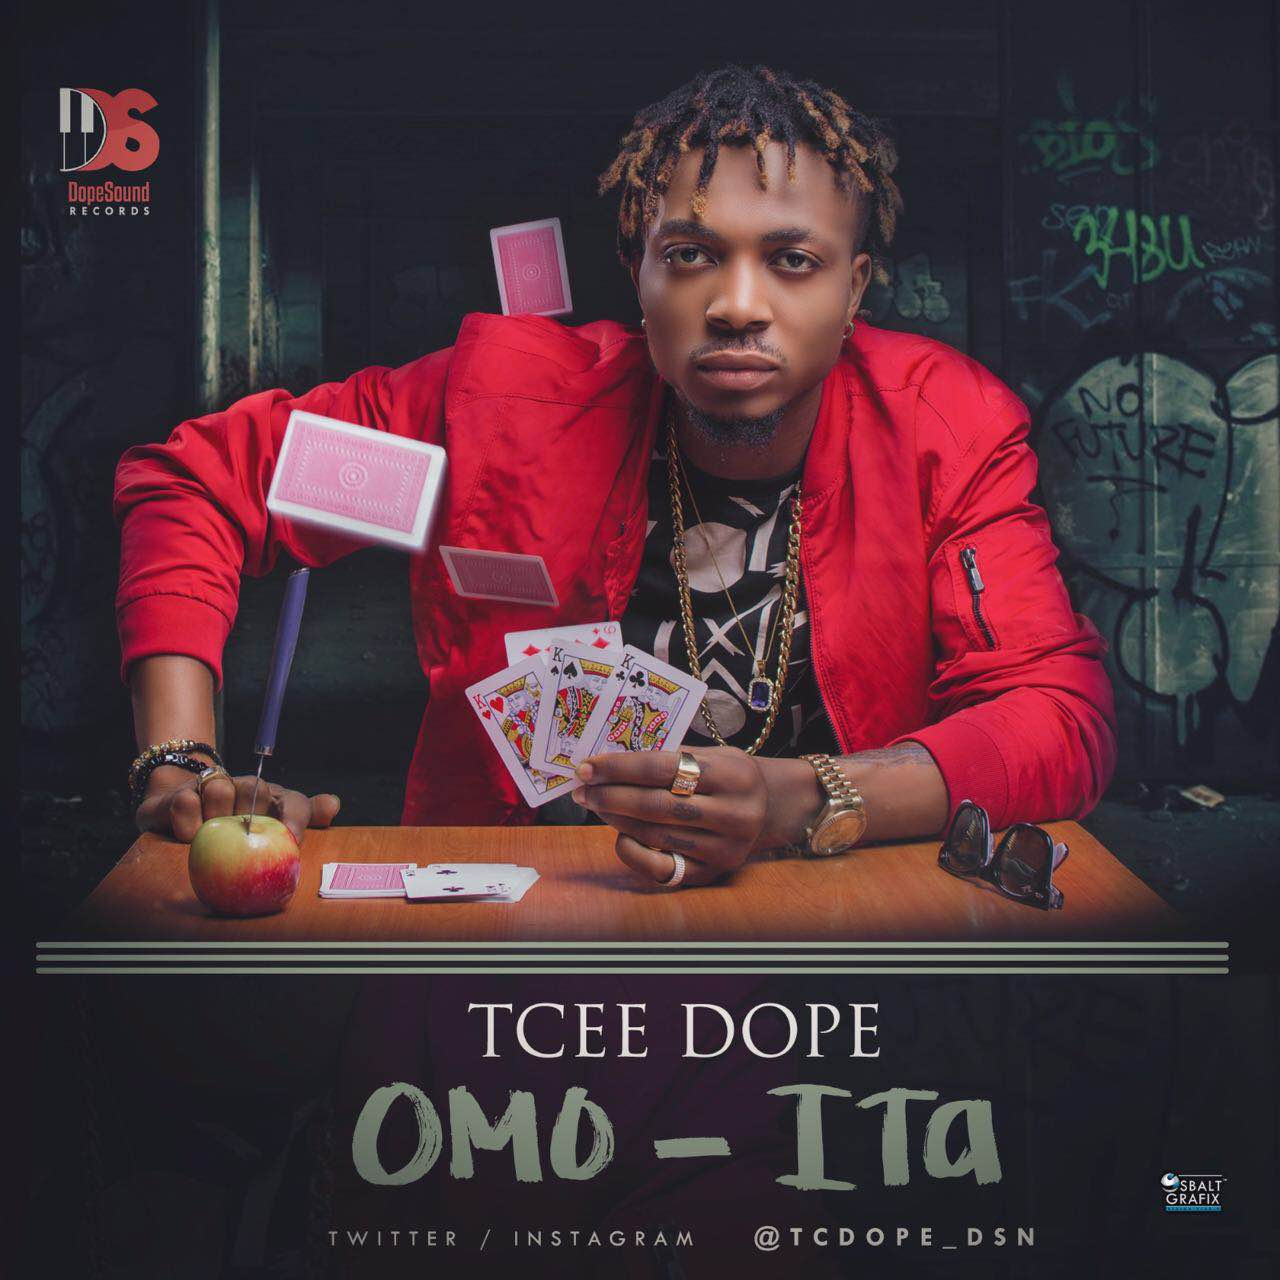 VIDEO: Tcee Dope - Omo Ita